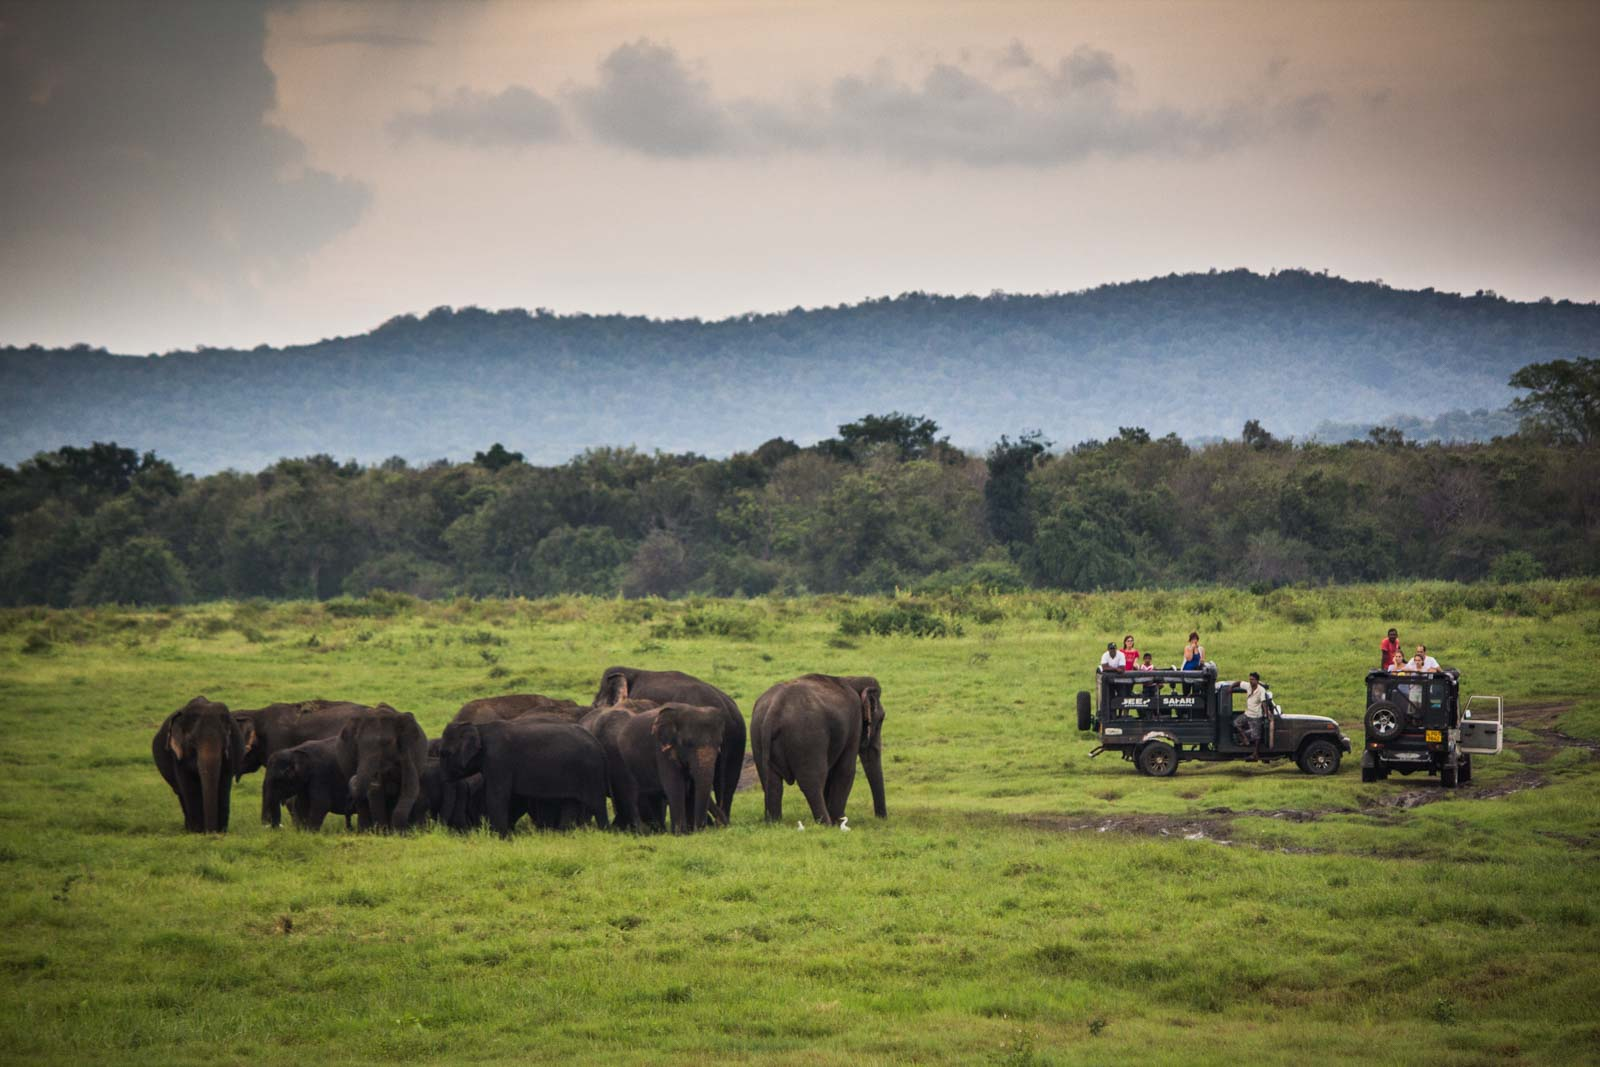 The Gathering, elephants, Kaudulla National Park, Sri Lanka